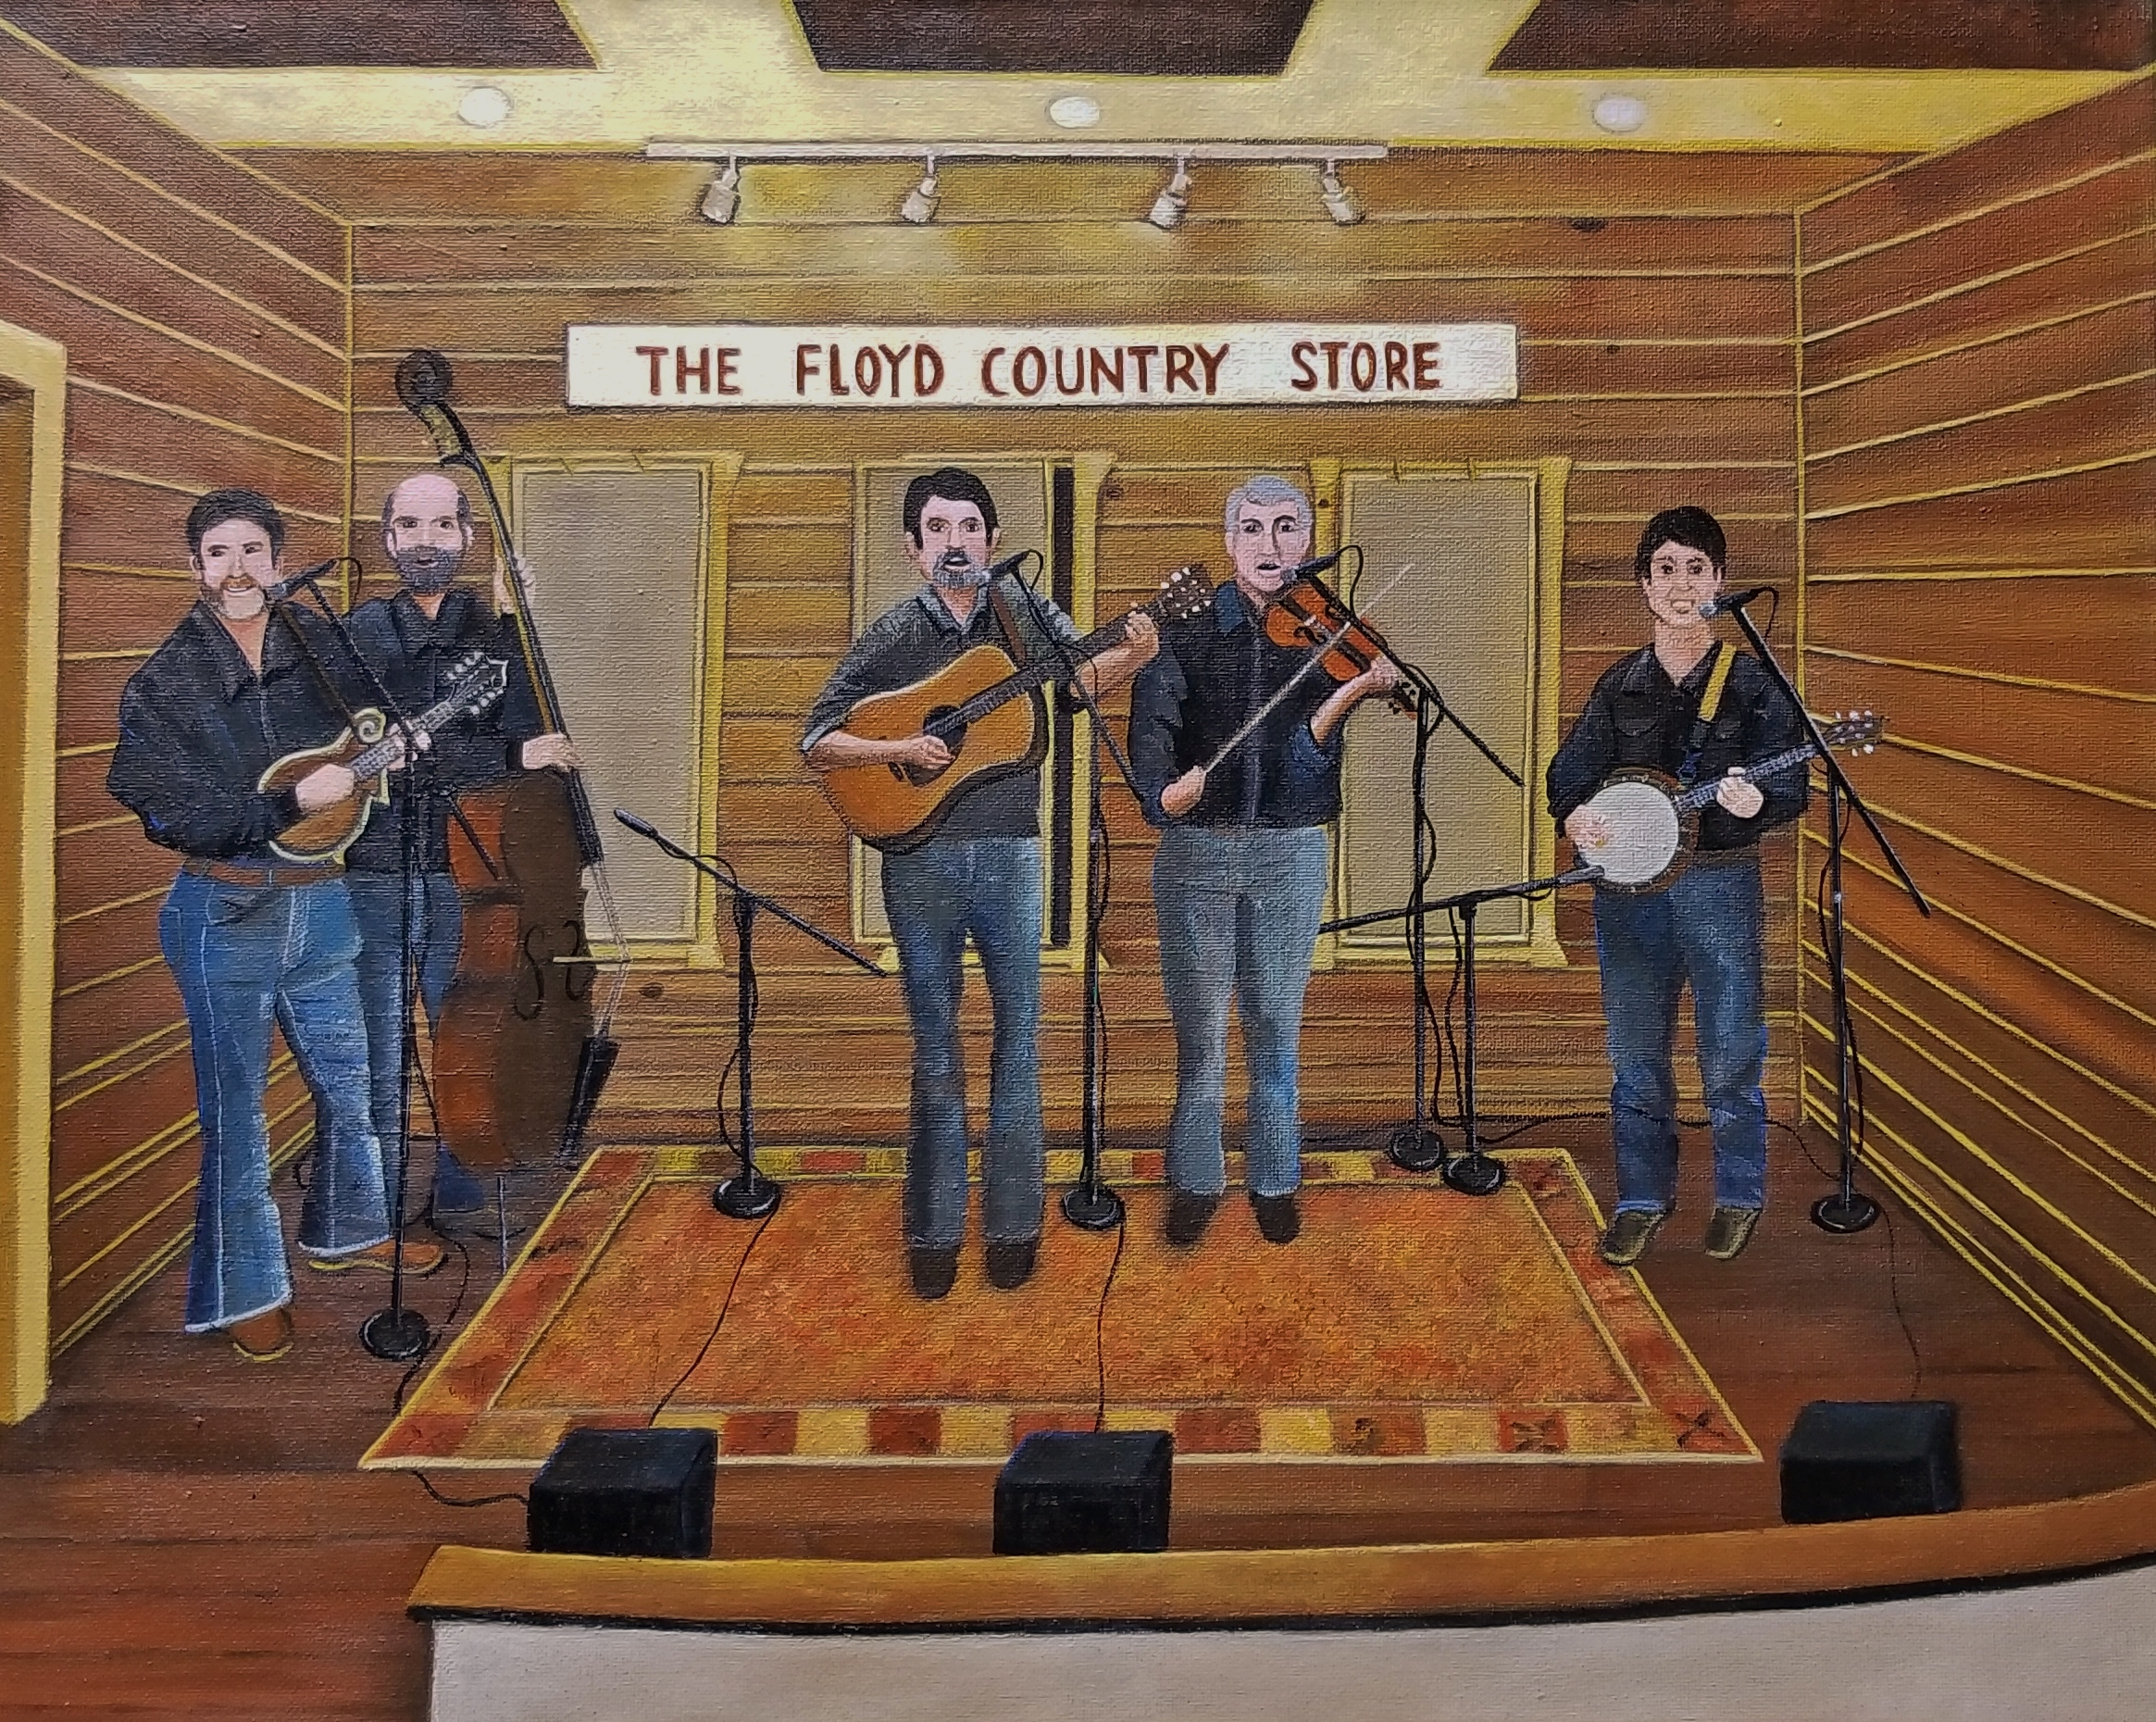 Lackey_Floyd Country Store_Acrylic 16 X 20.jpg